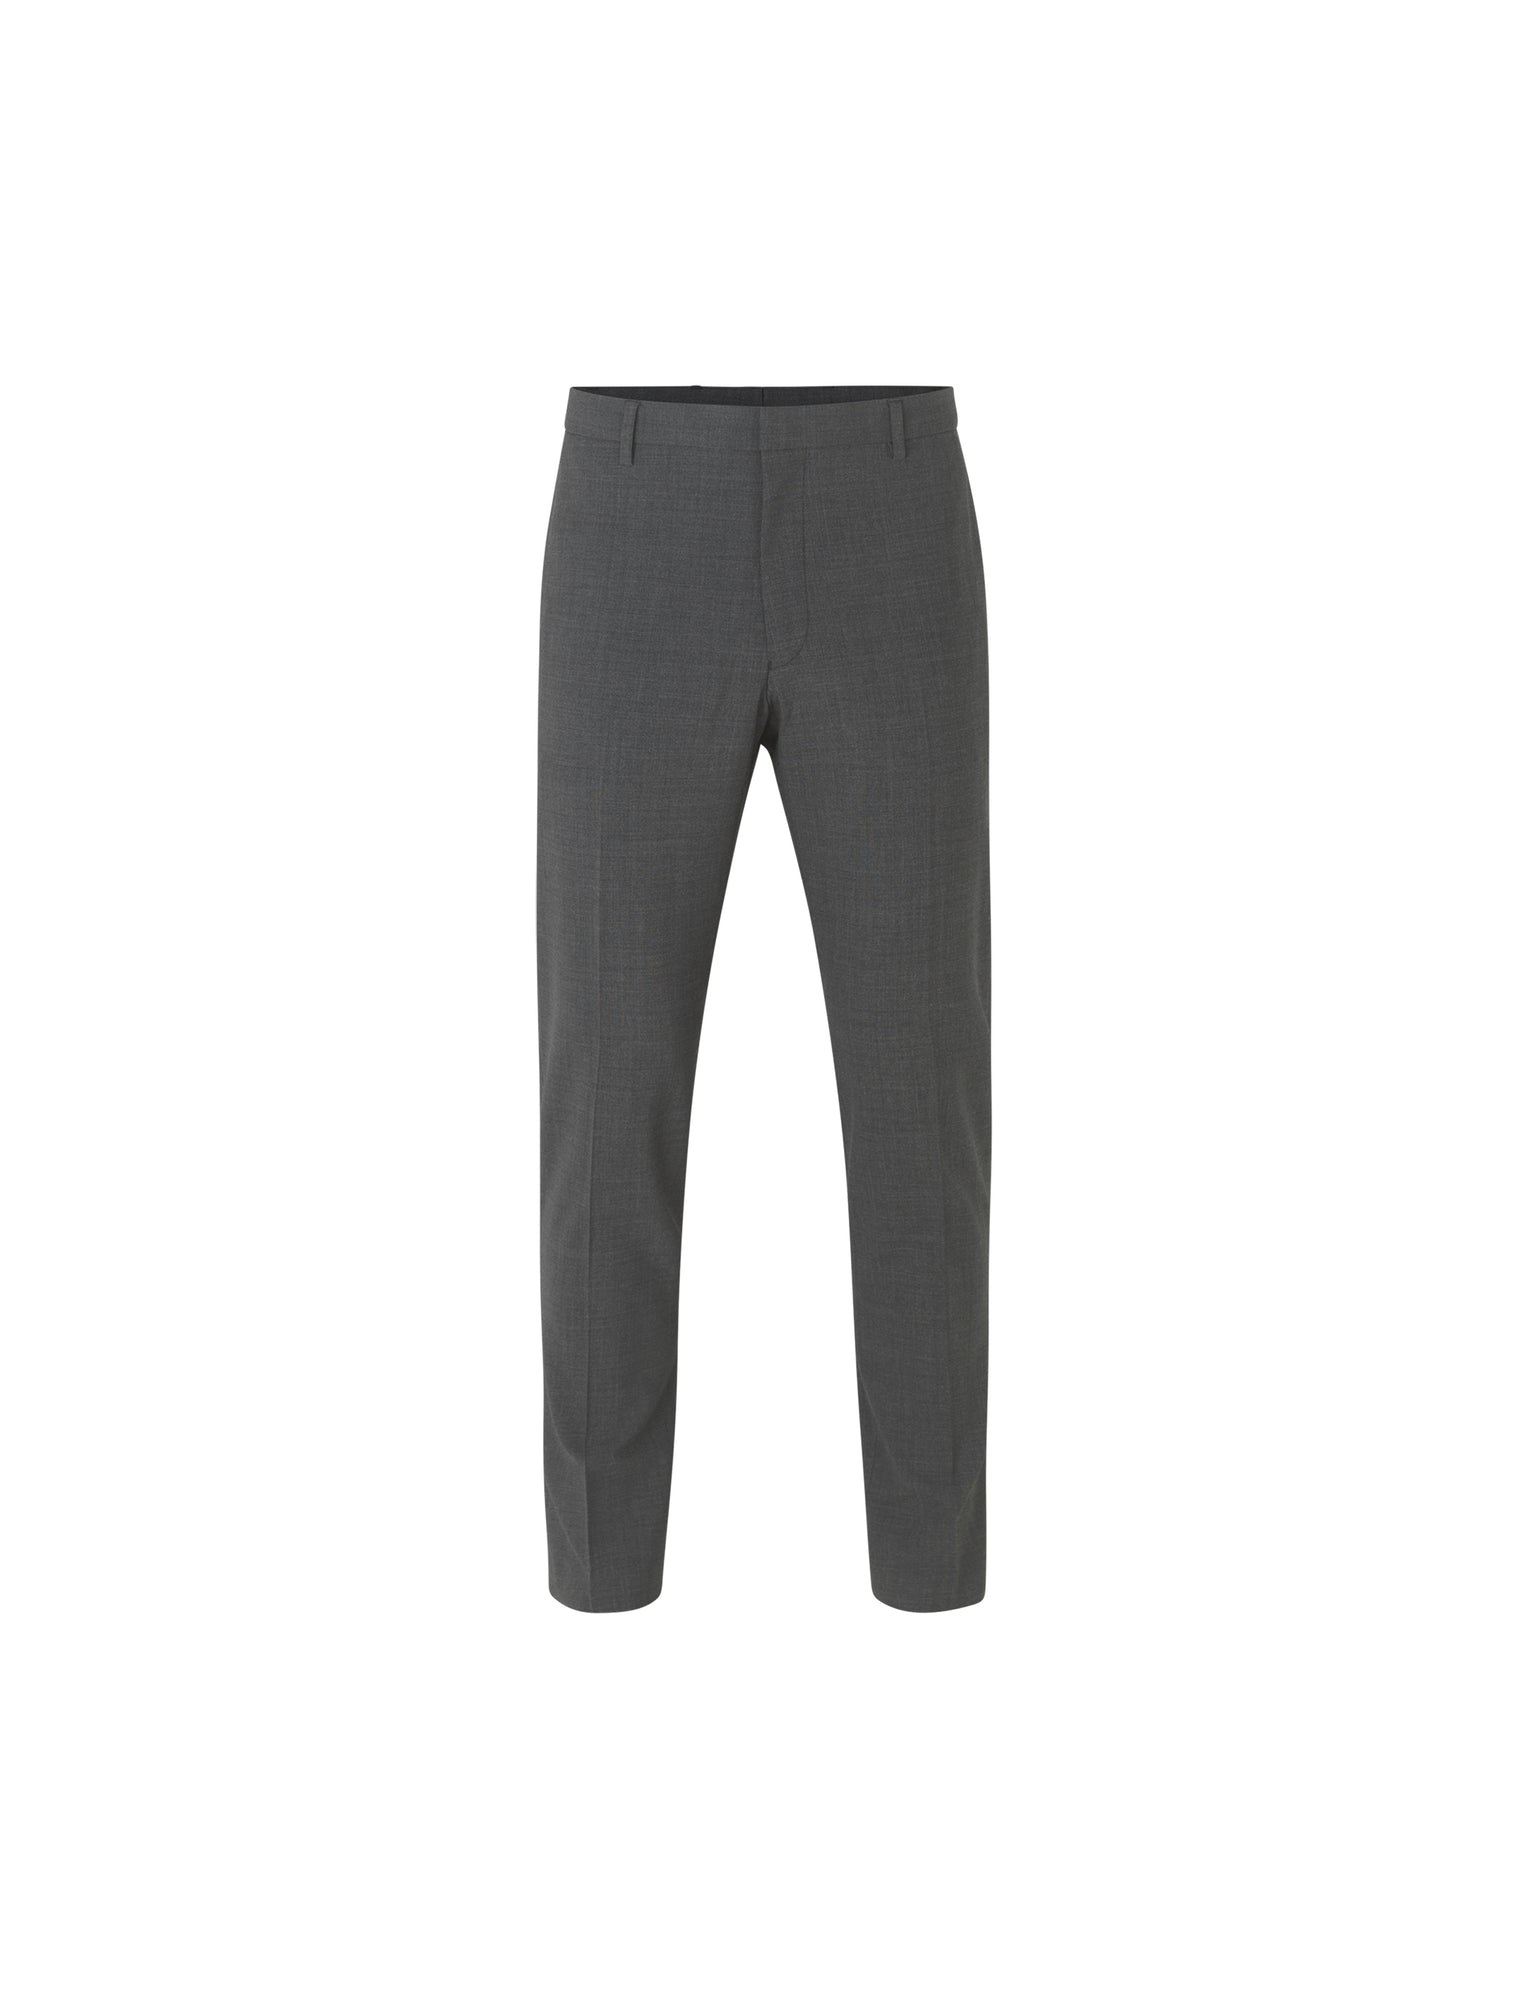 Uniform Wool Peckham, Charcoal Melange